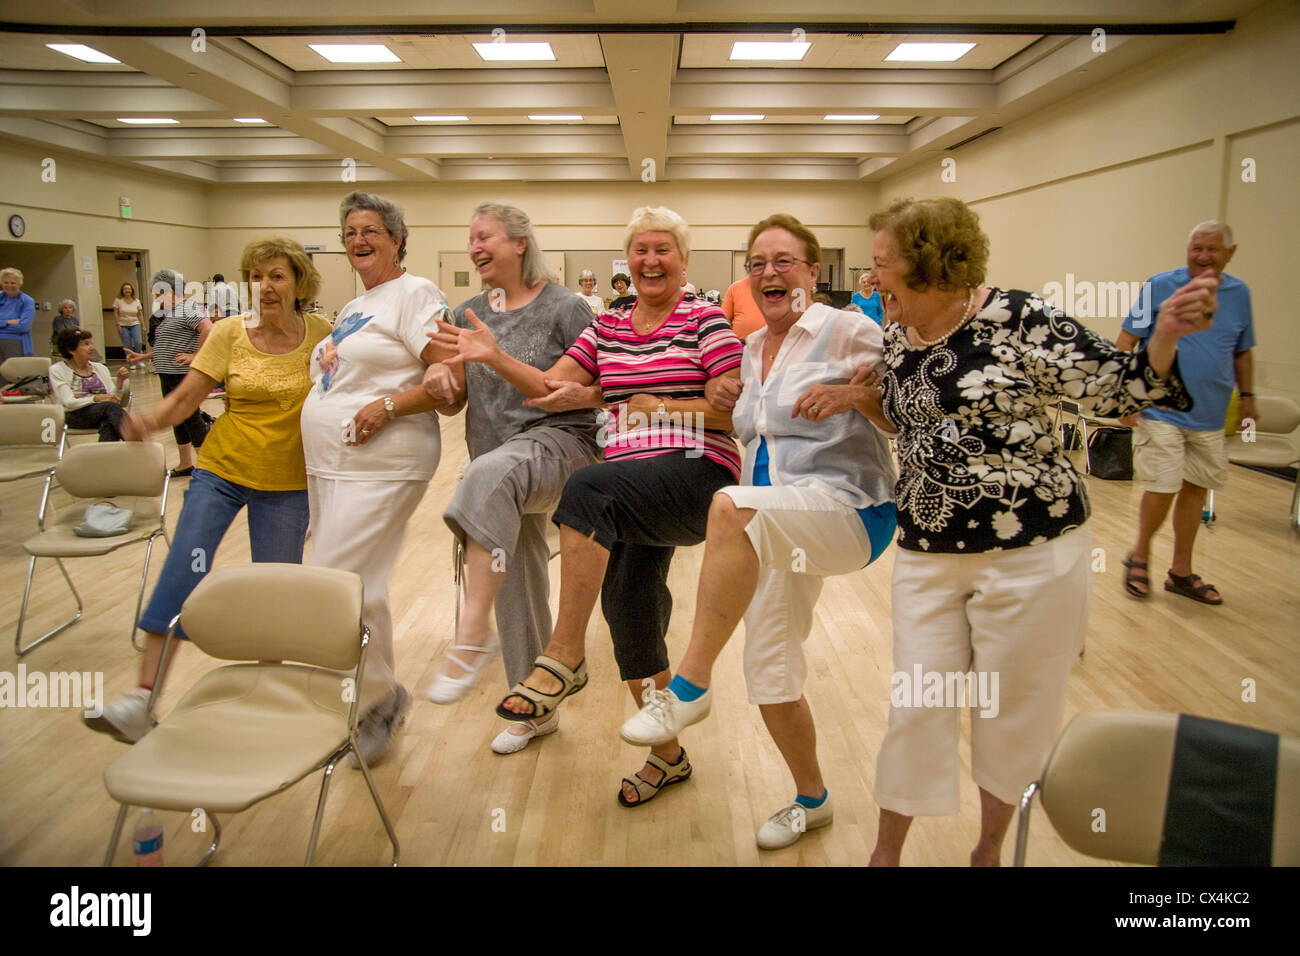 Exuberant senior women form a spontaneous kick line before a chair exercise class at a senior center in Tustin, - Stock Image